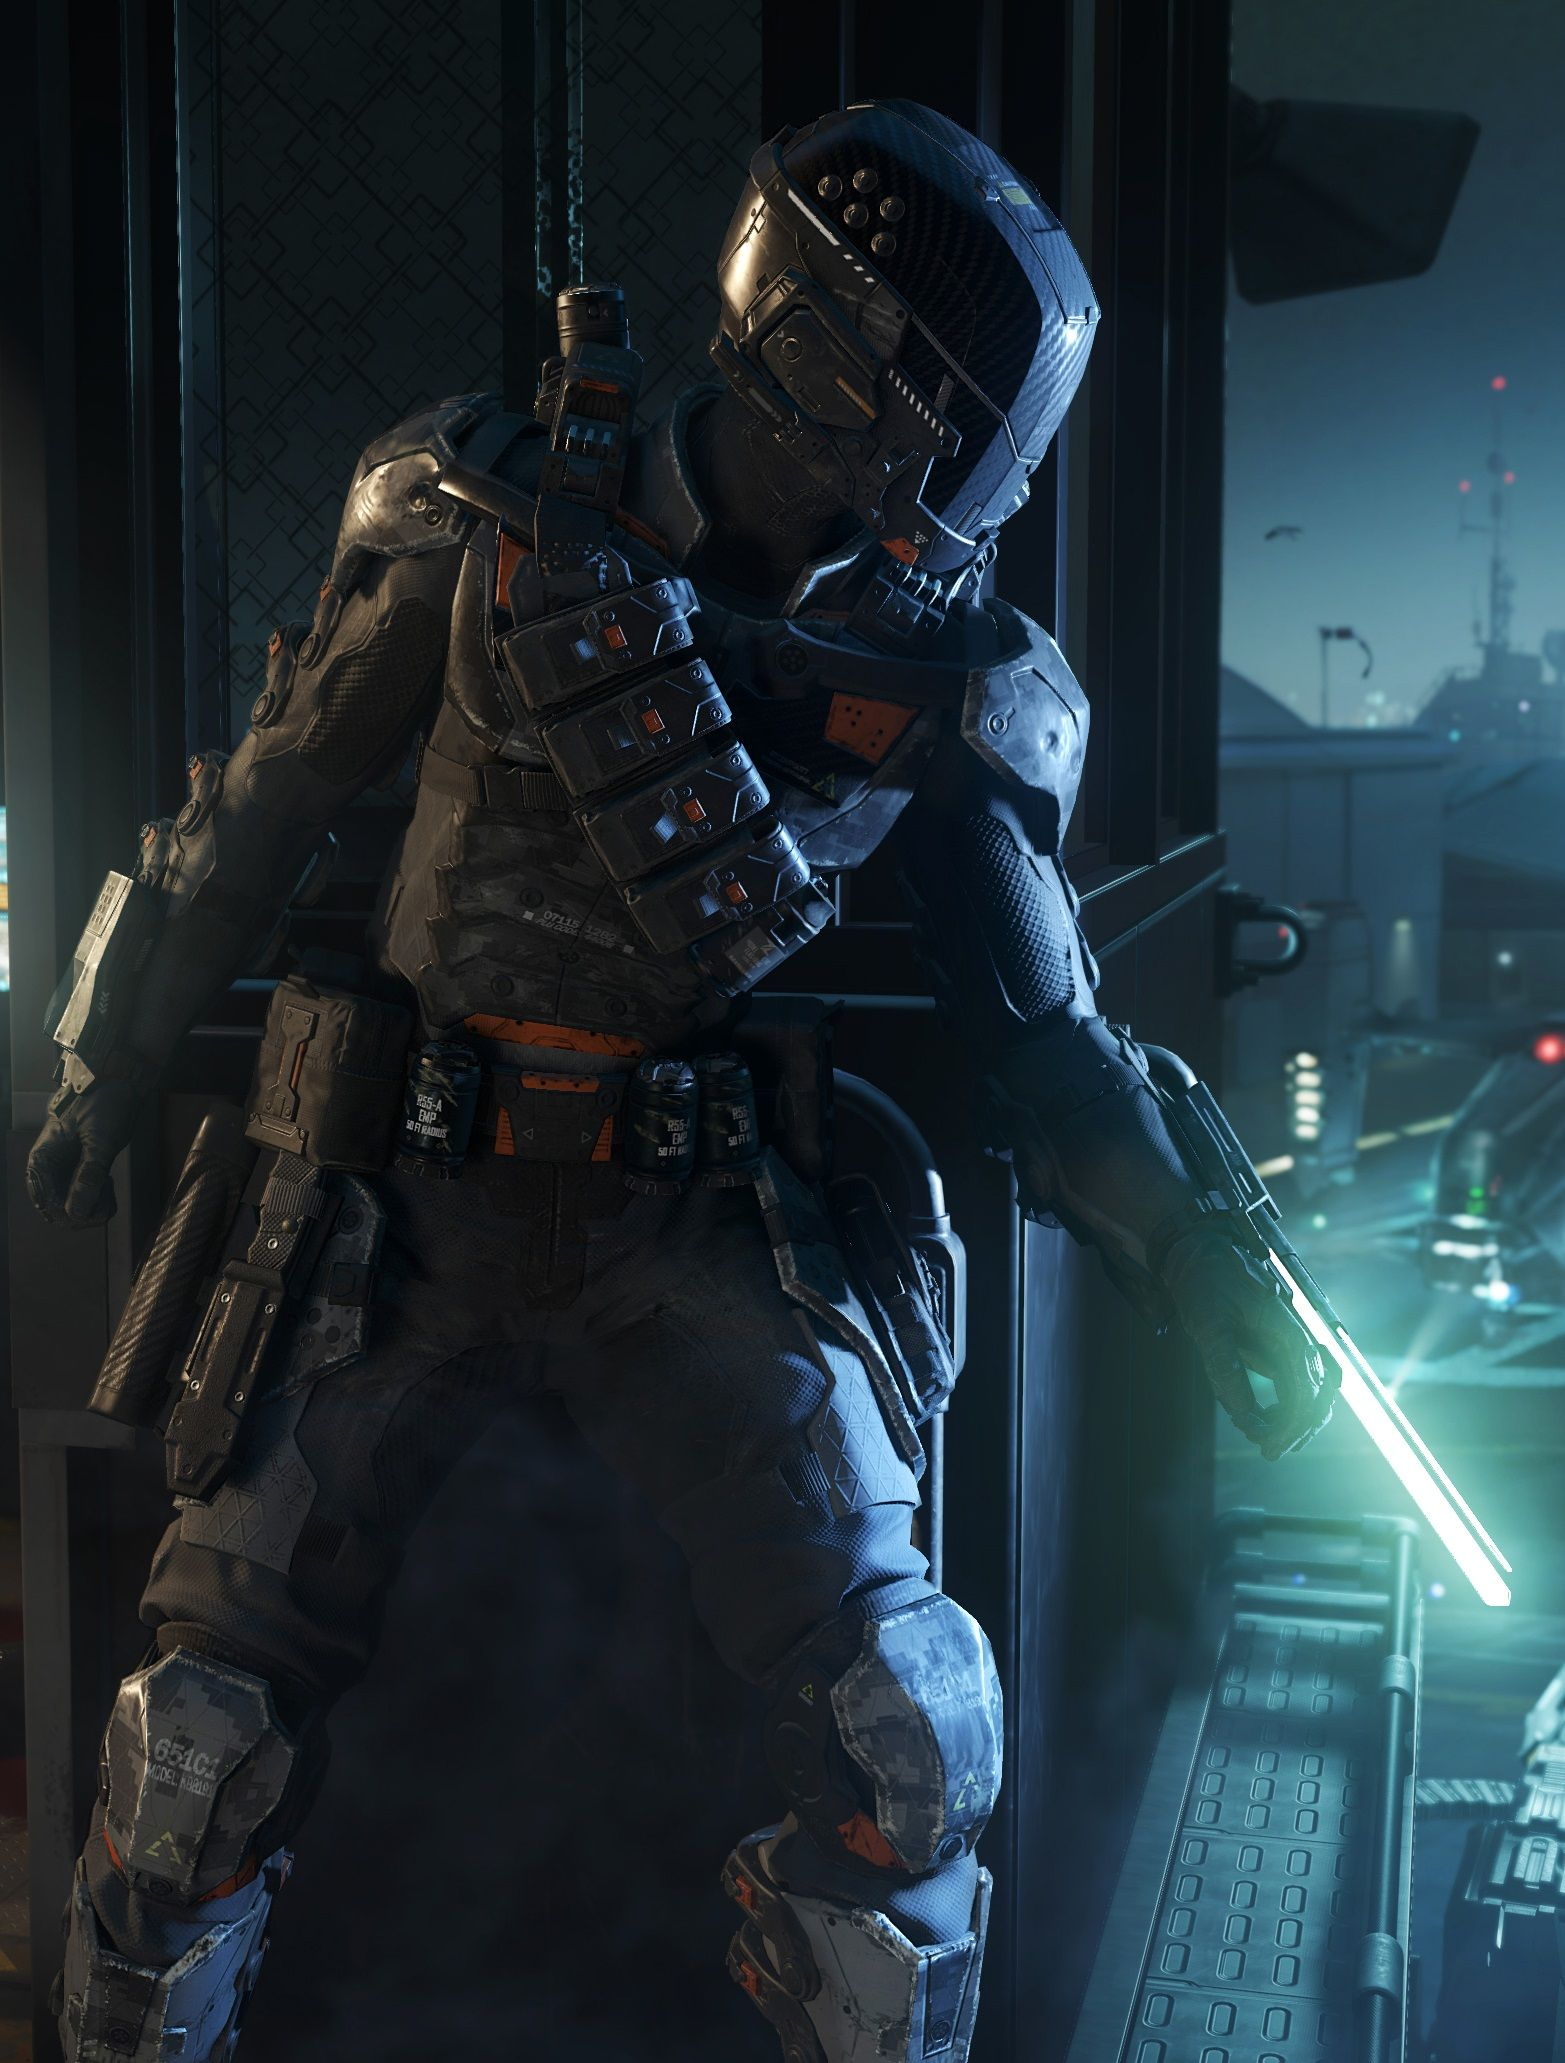 spectre specialist the call of duty wiki black ops ii ghosts